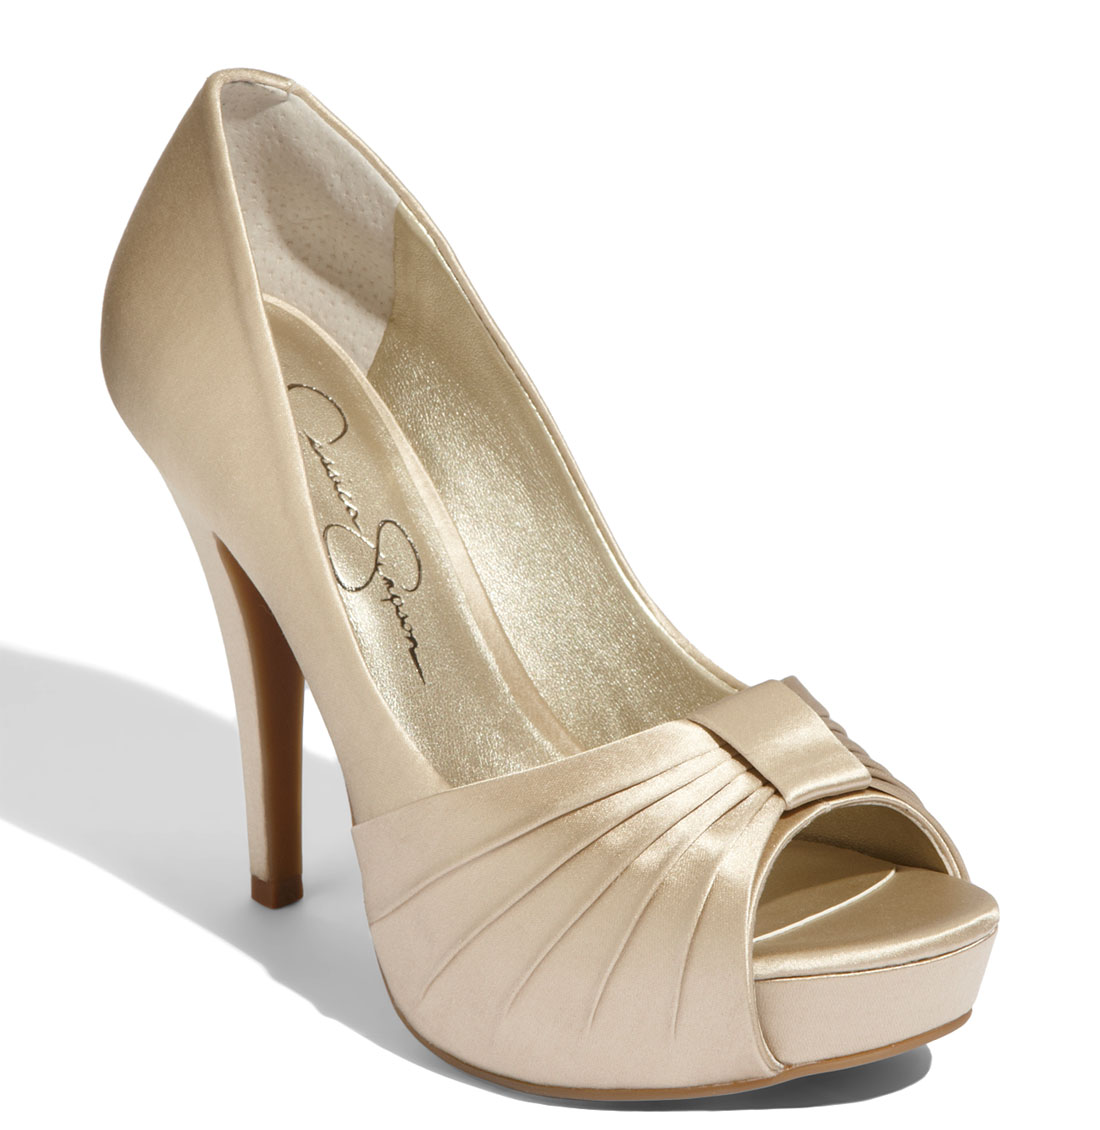 https://cdna.lystit.com/photos/2010/11/29/jessica-simpson-champagne-satin-alek-pump-fabric-gold-product-2-89510-193182169.jpeg